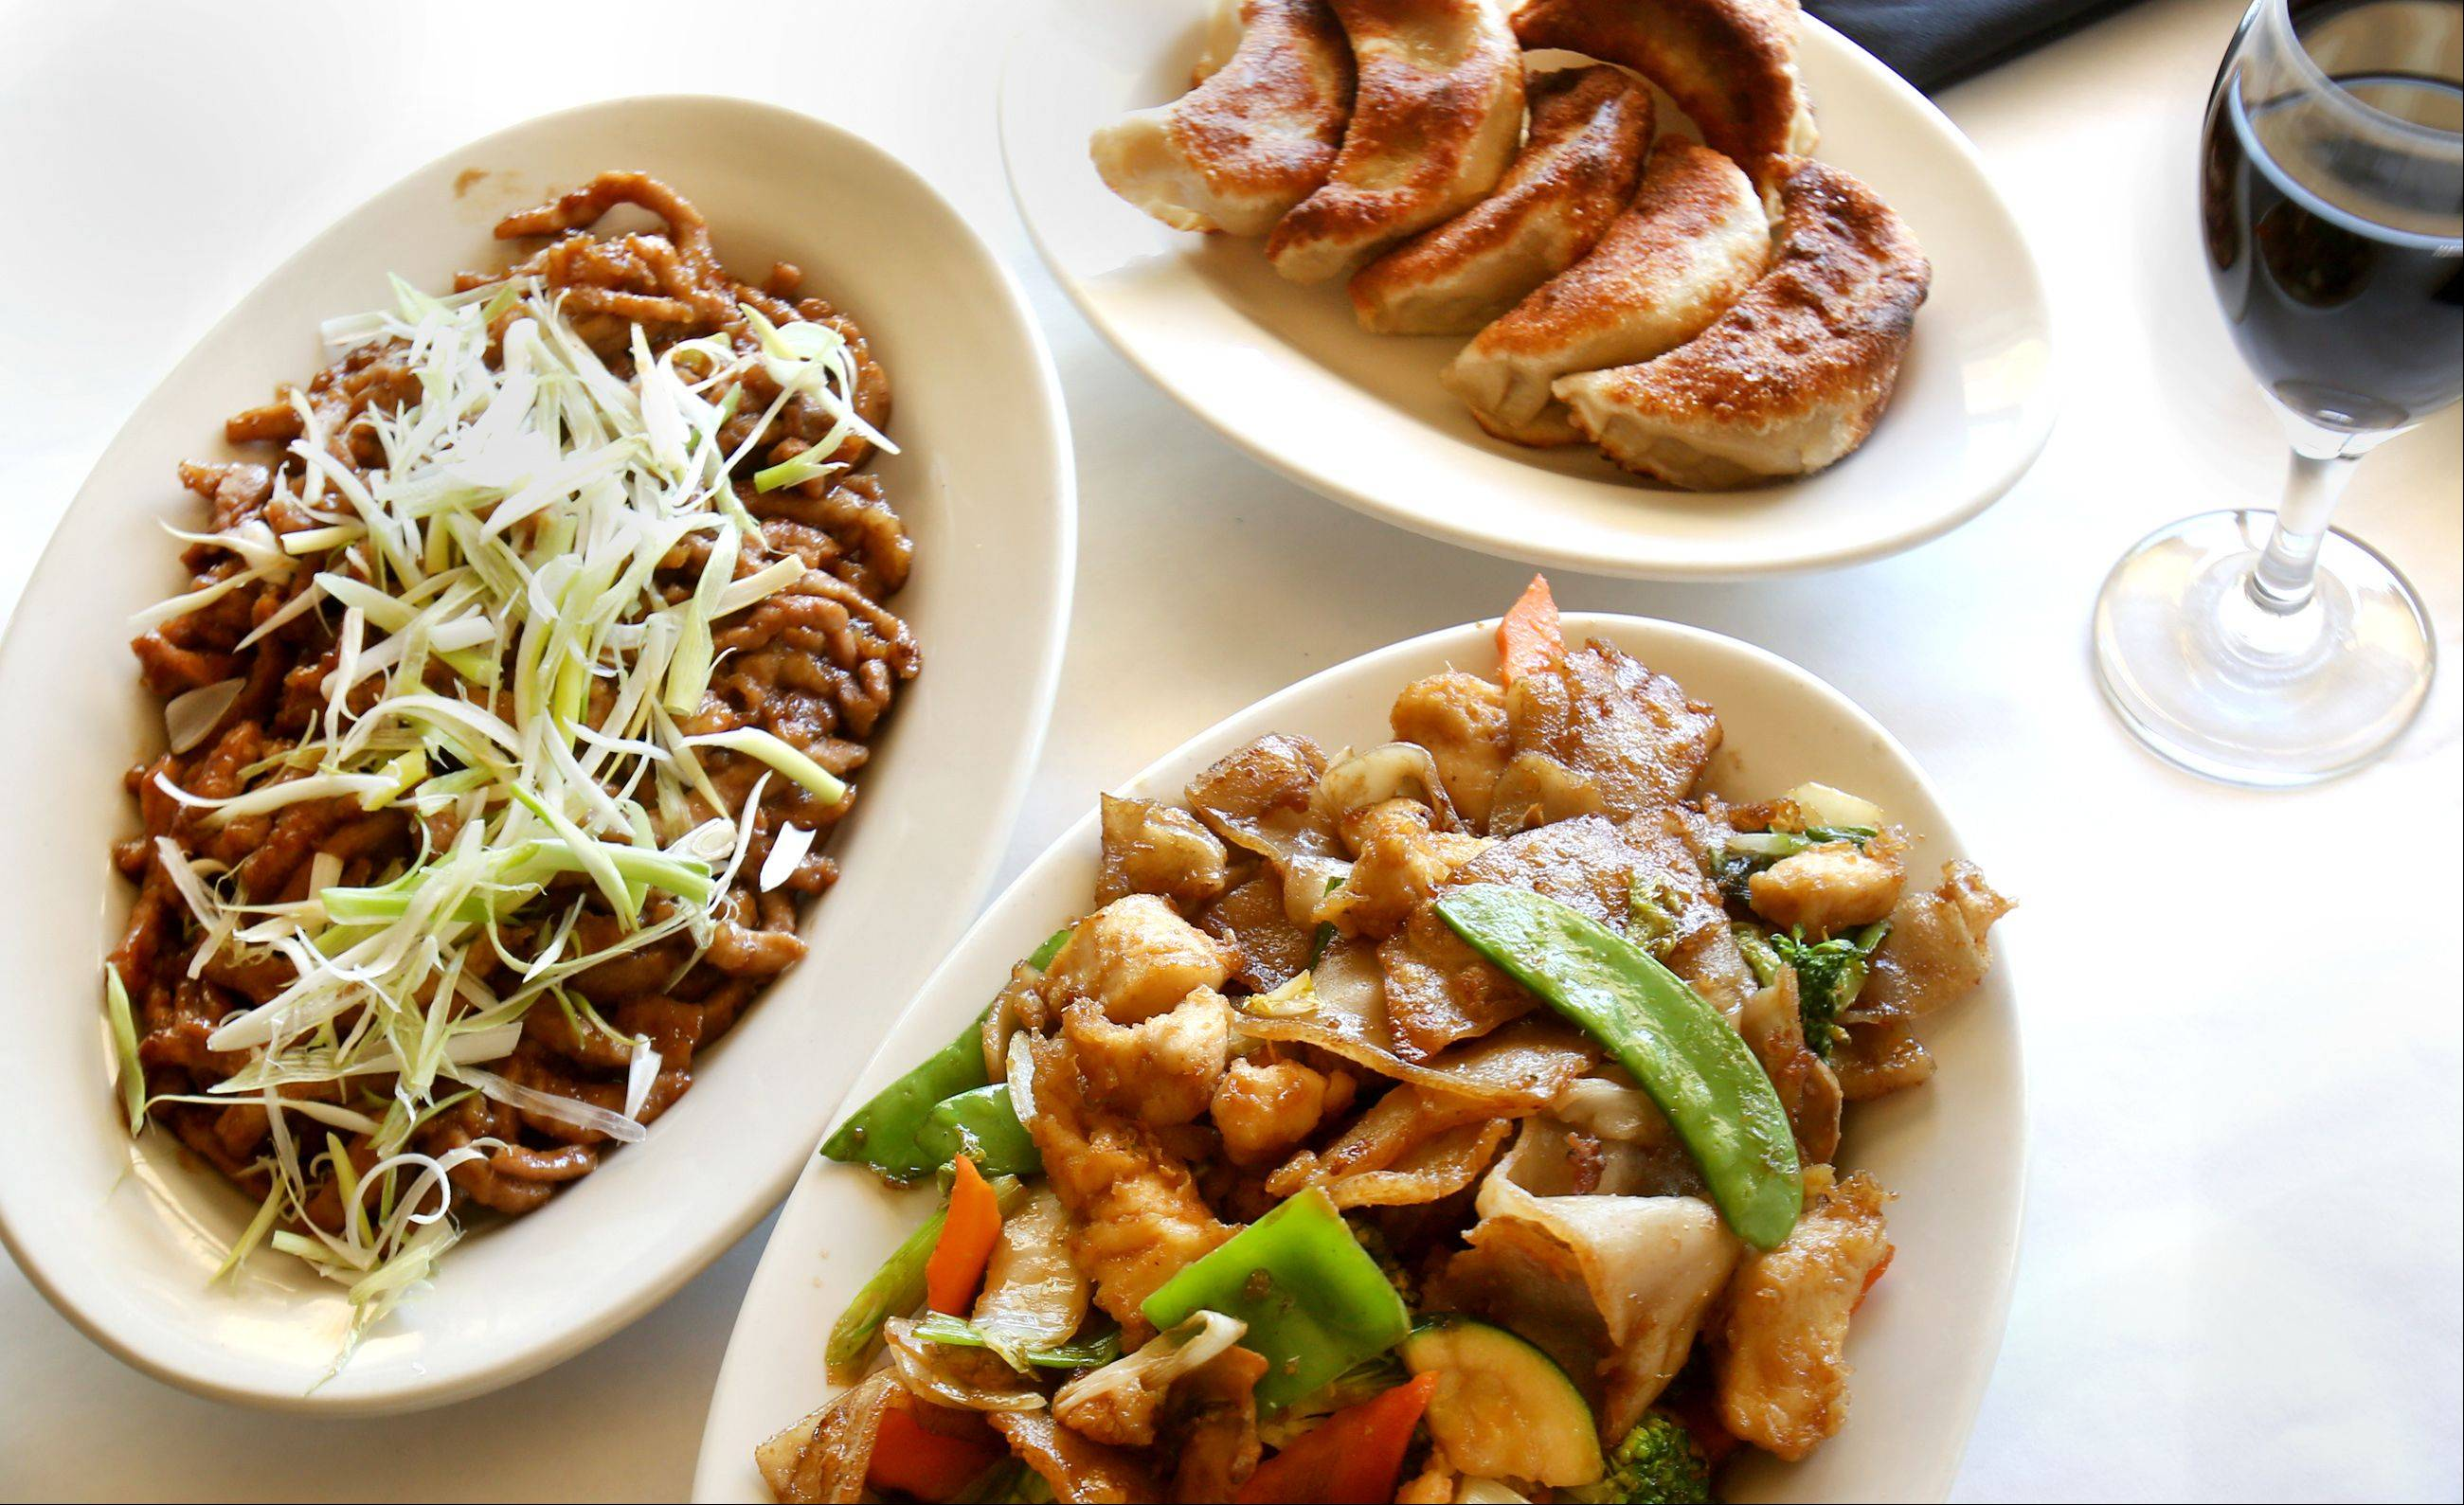 Mandarin pork, chicken chow fun and pot stickers are featured at the Hua Ting Restaurant in Hinsdale.